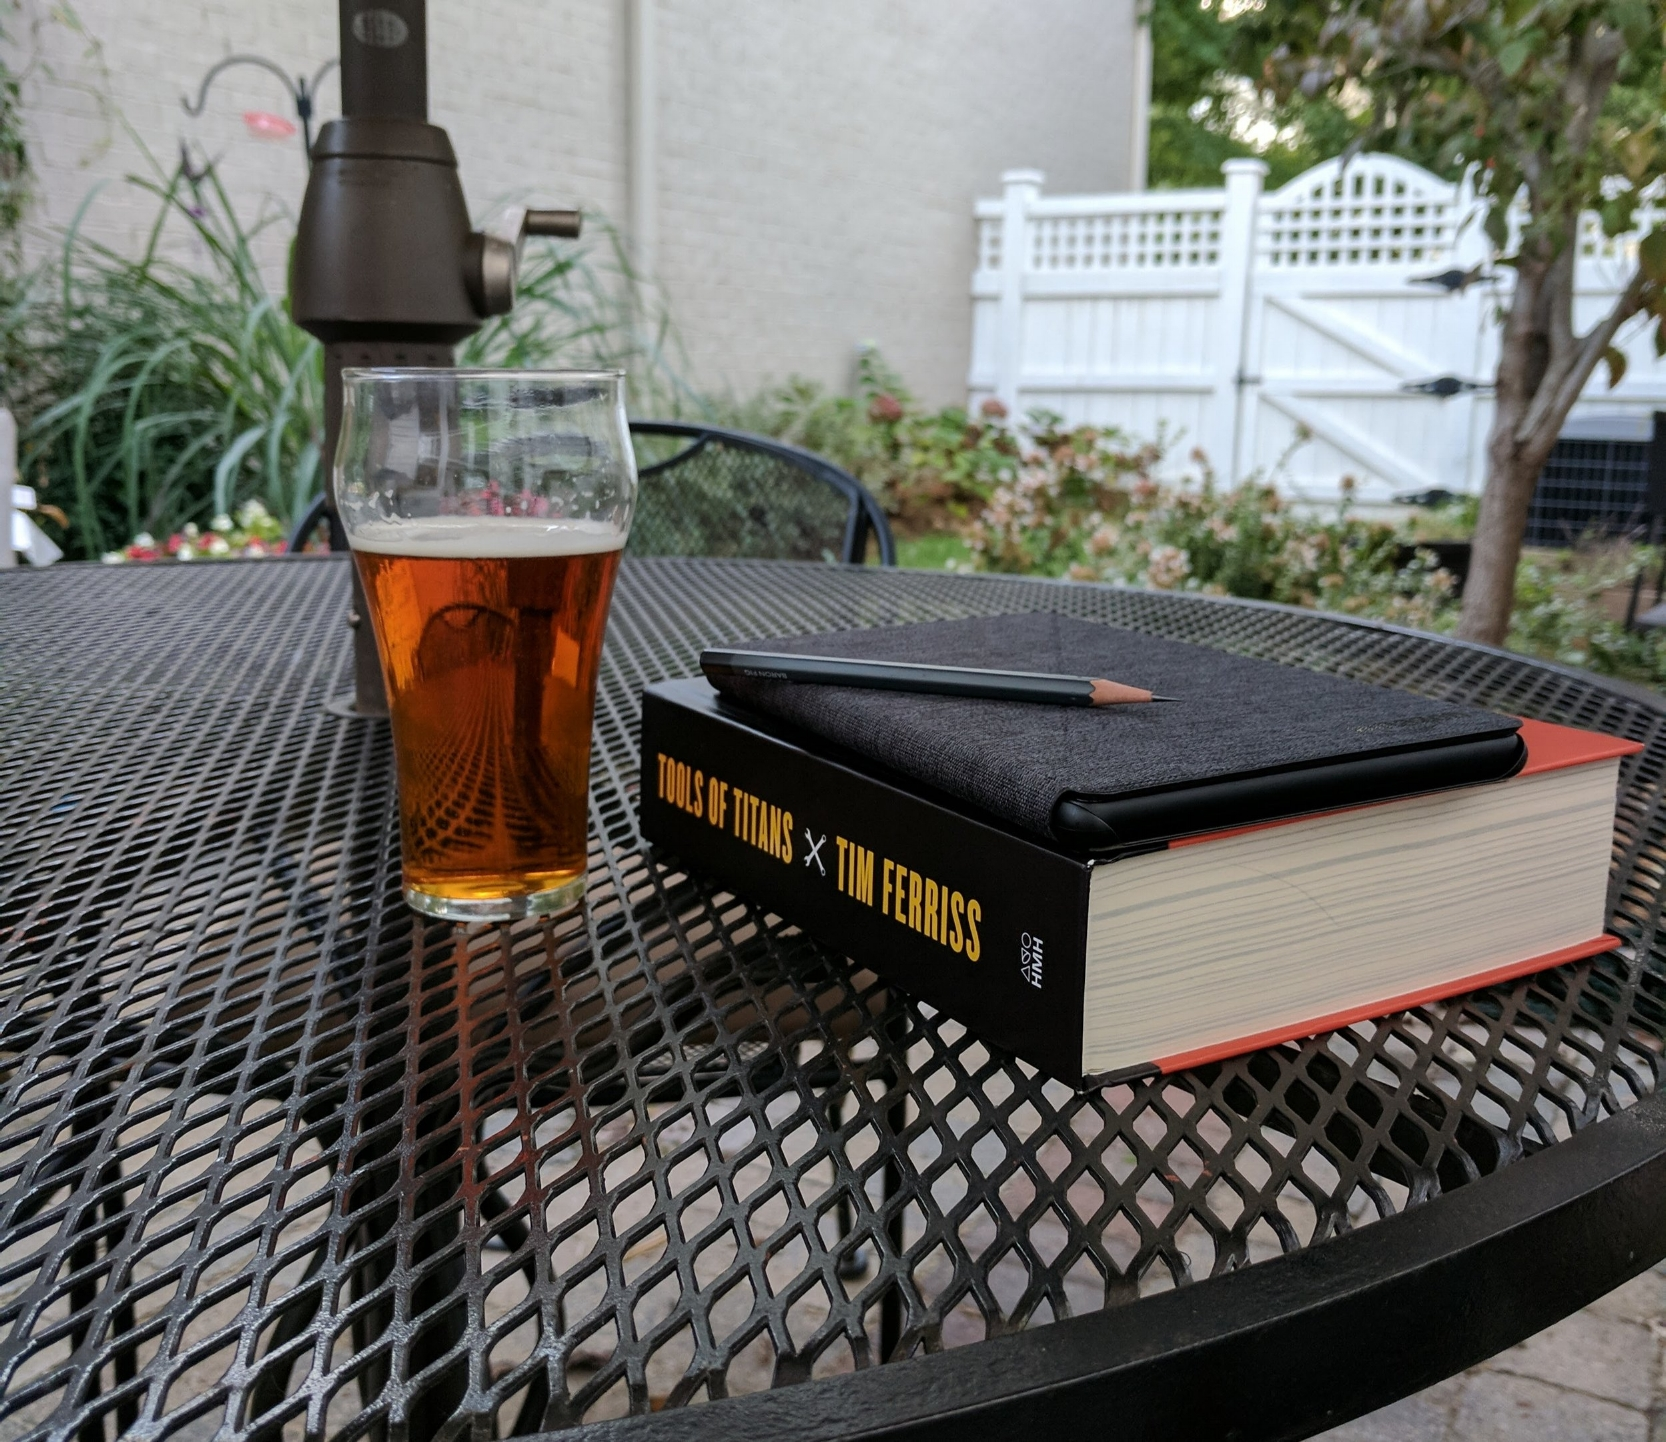 It's that time of year again, when the temps start dipping below 80, the mosquitoes start to die, and it's pleasant to read outside.